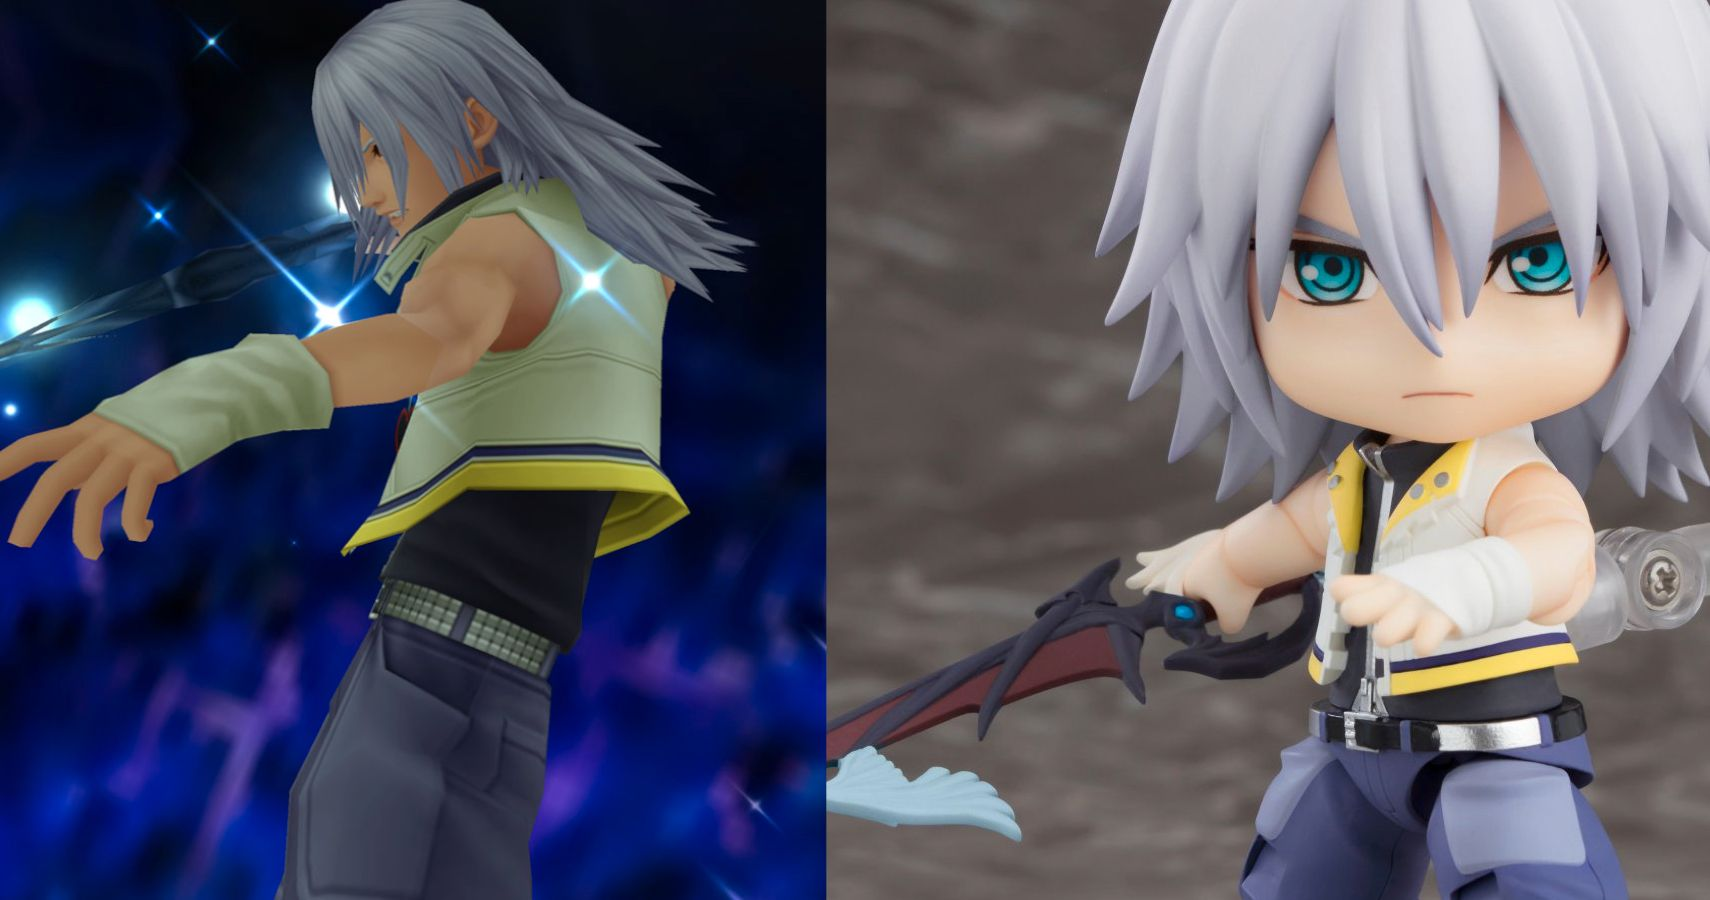 Kingdom Hearts 2 Riku Nendoroid Is Now Up For Preorder